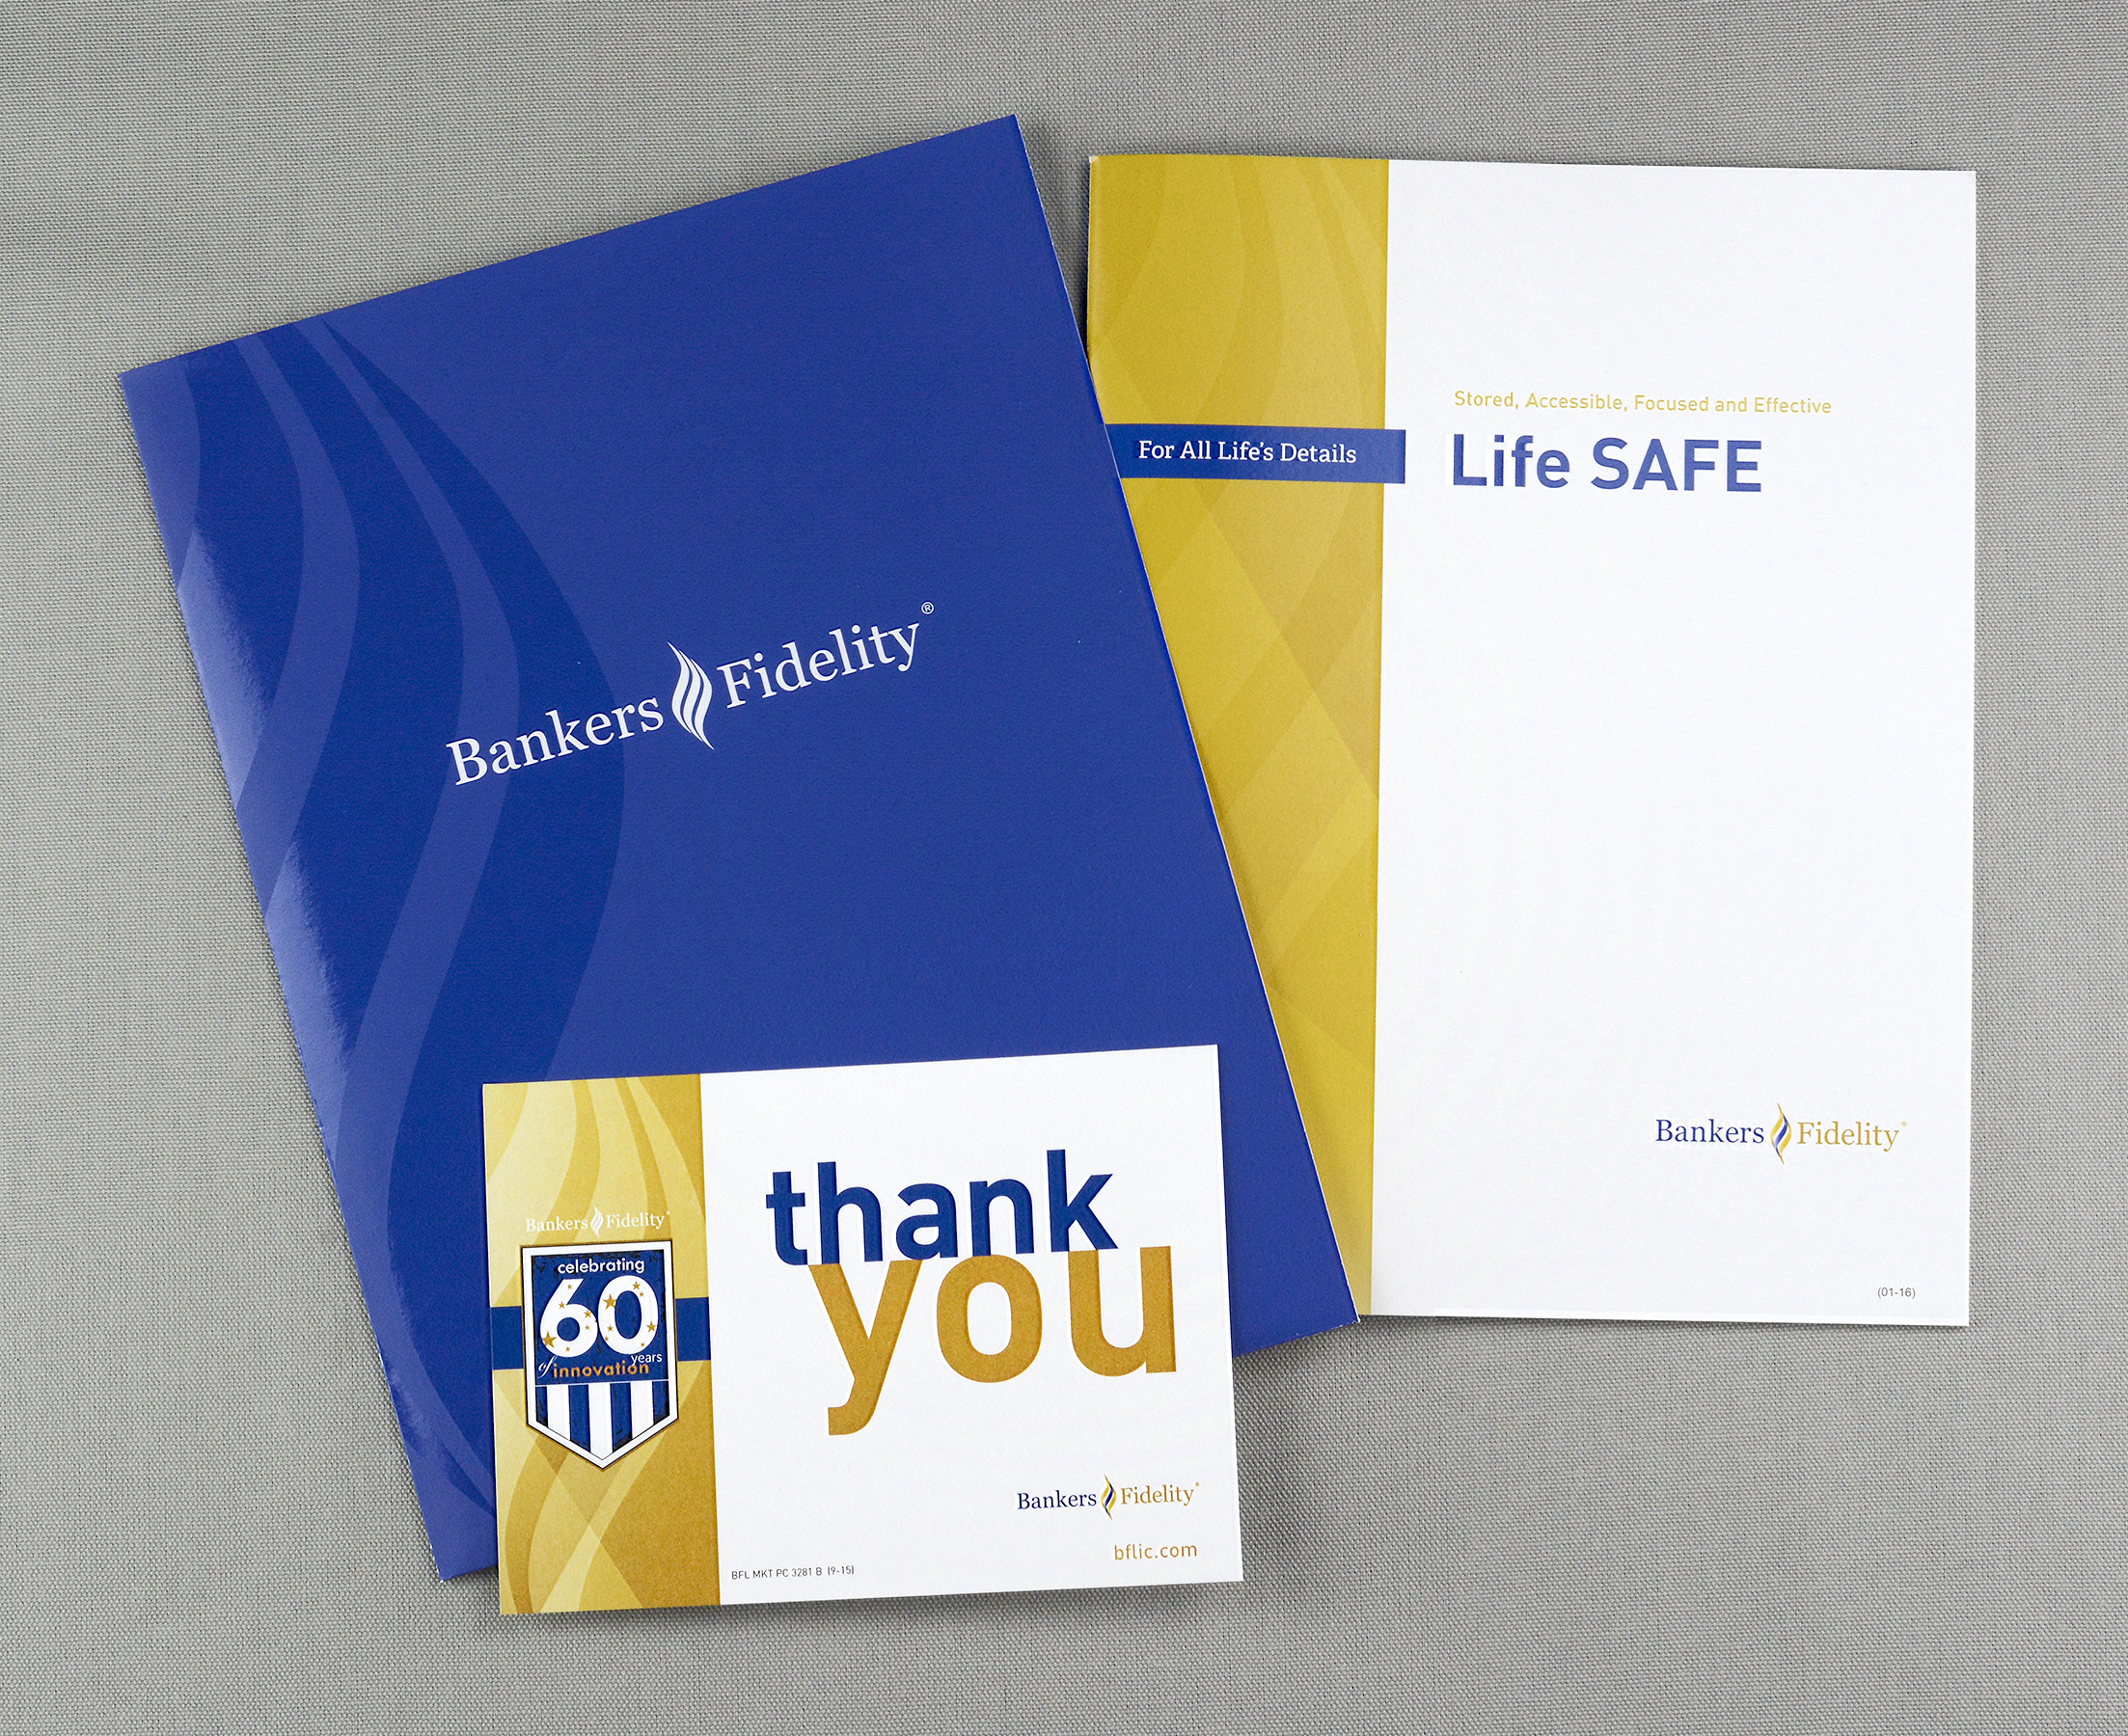 Life SAFE pocket folder thank you.jpg